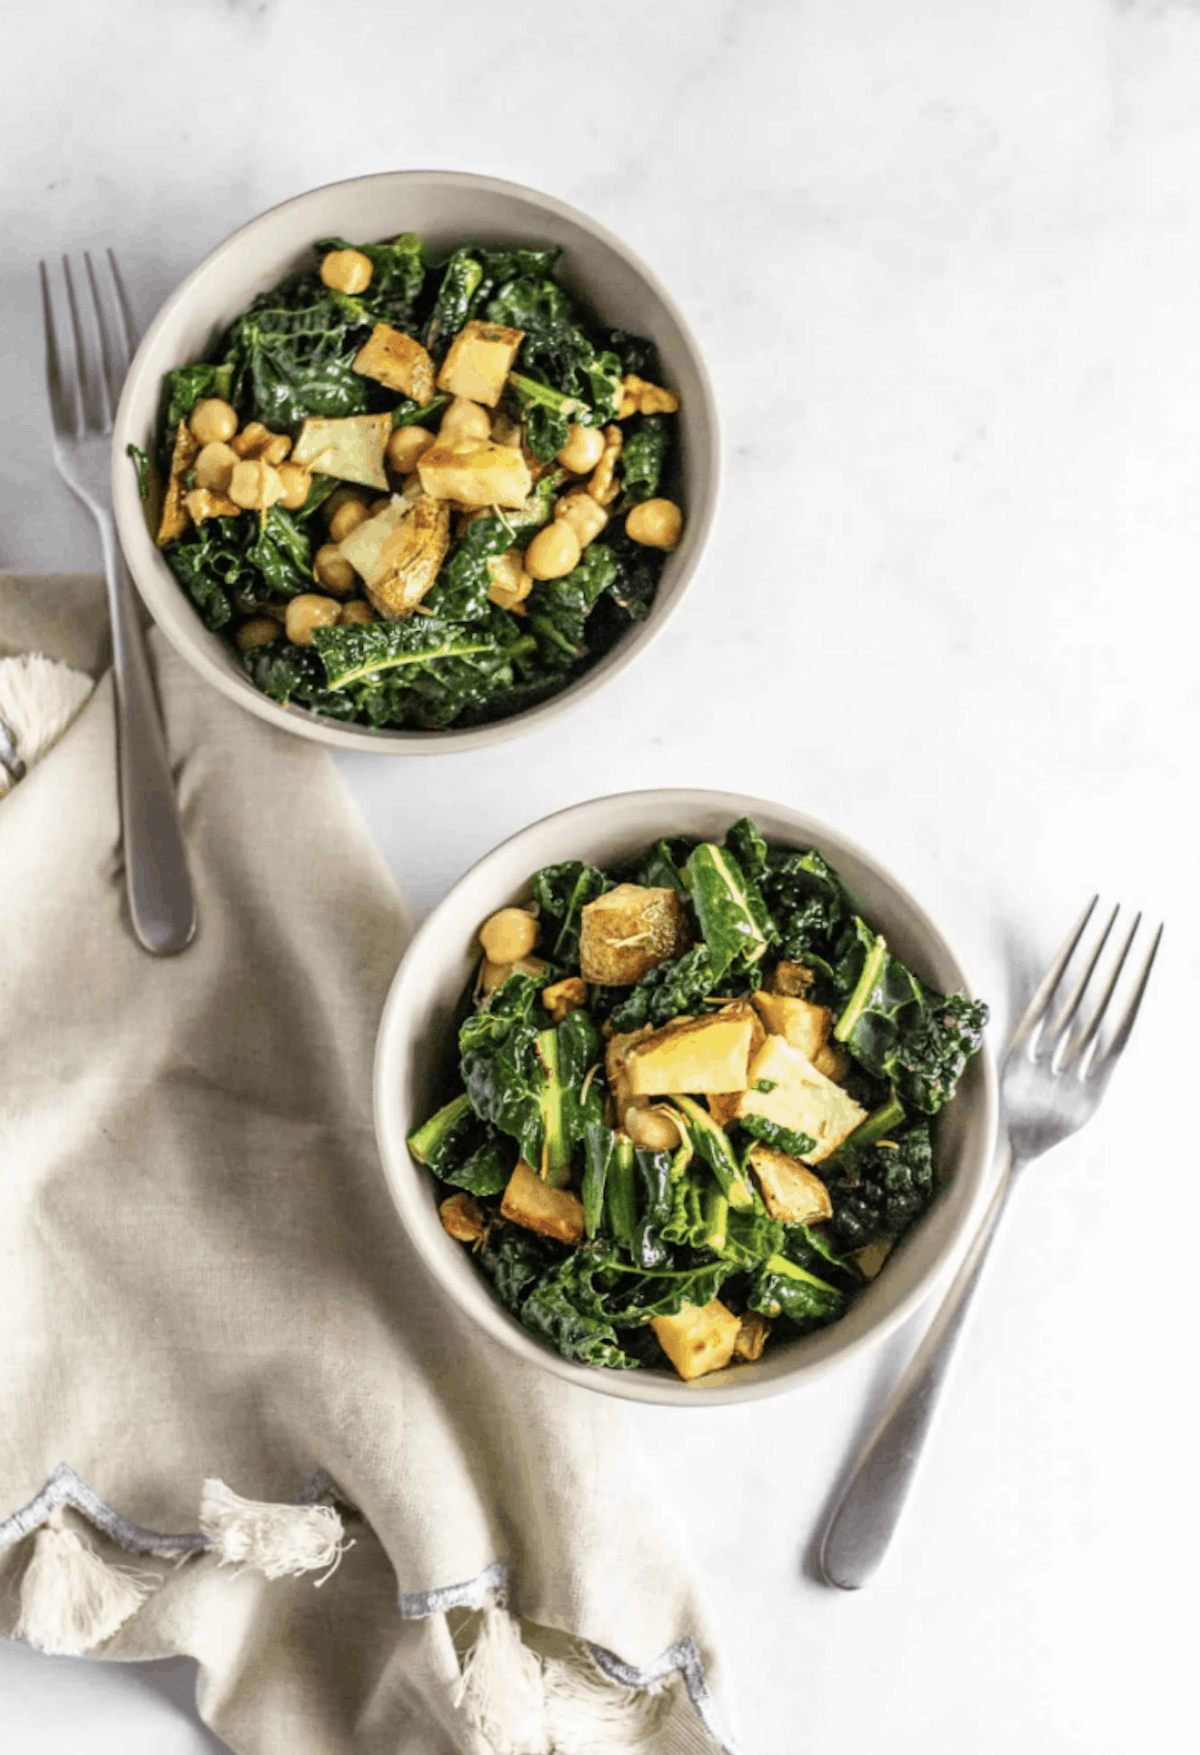 Two bowls of kale salad with crispy tofu and chickpeas on white background, two forks, and a beige linen napkin